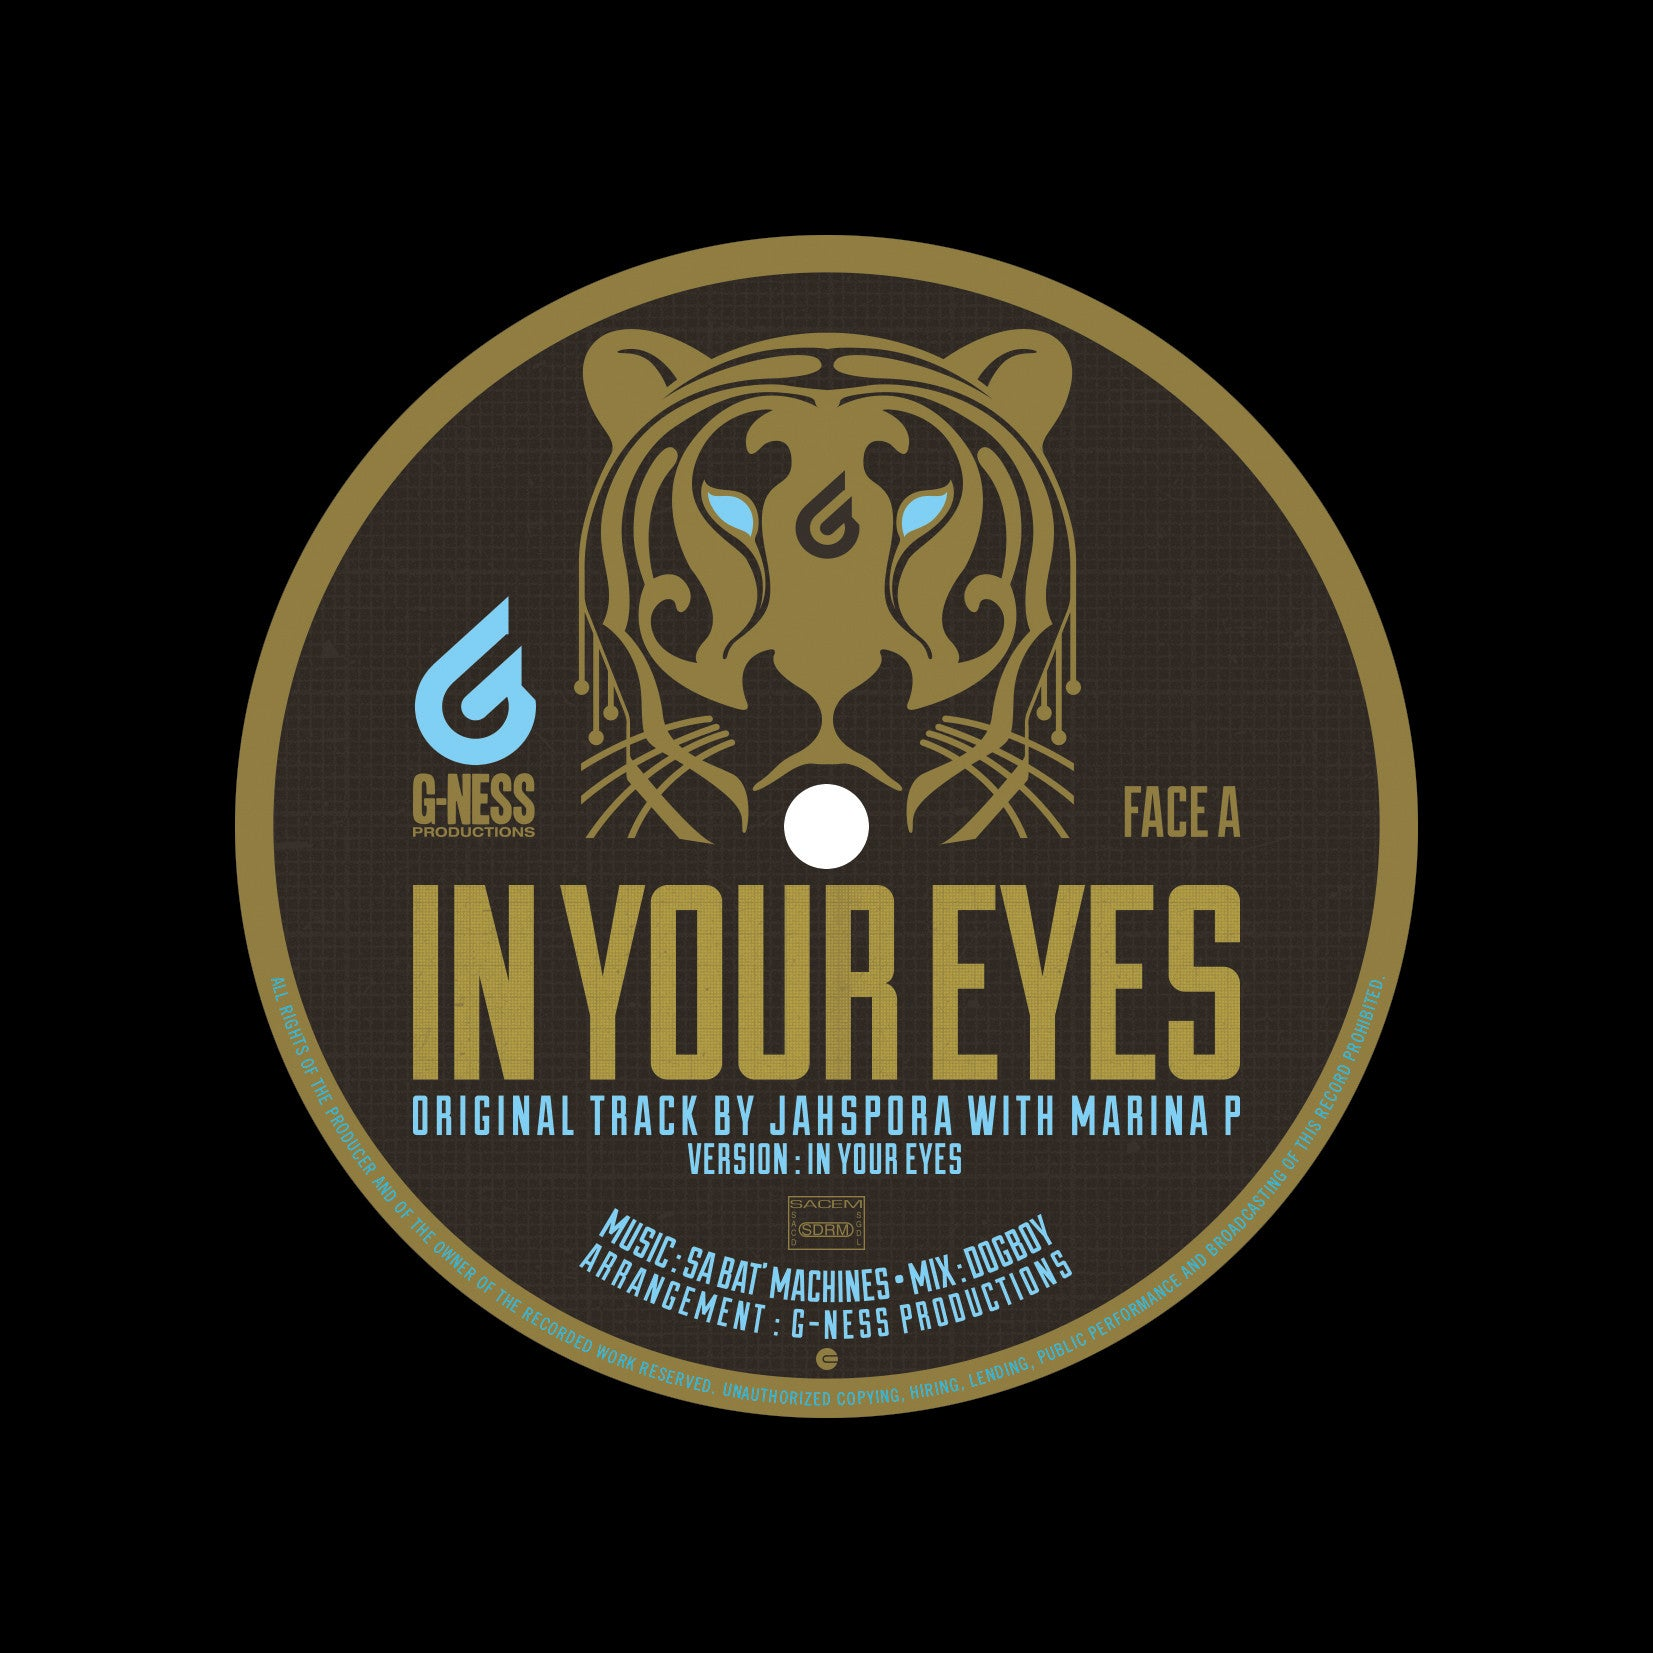 Marina P, Murray Man, Sa Bat' Machines - In Your Eyes / Girl Next Door - Unearthed Sounds